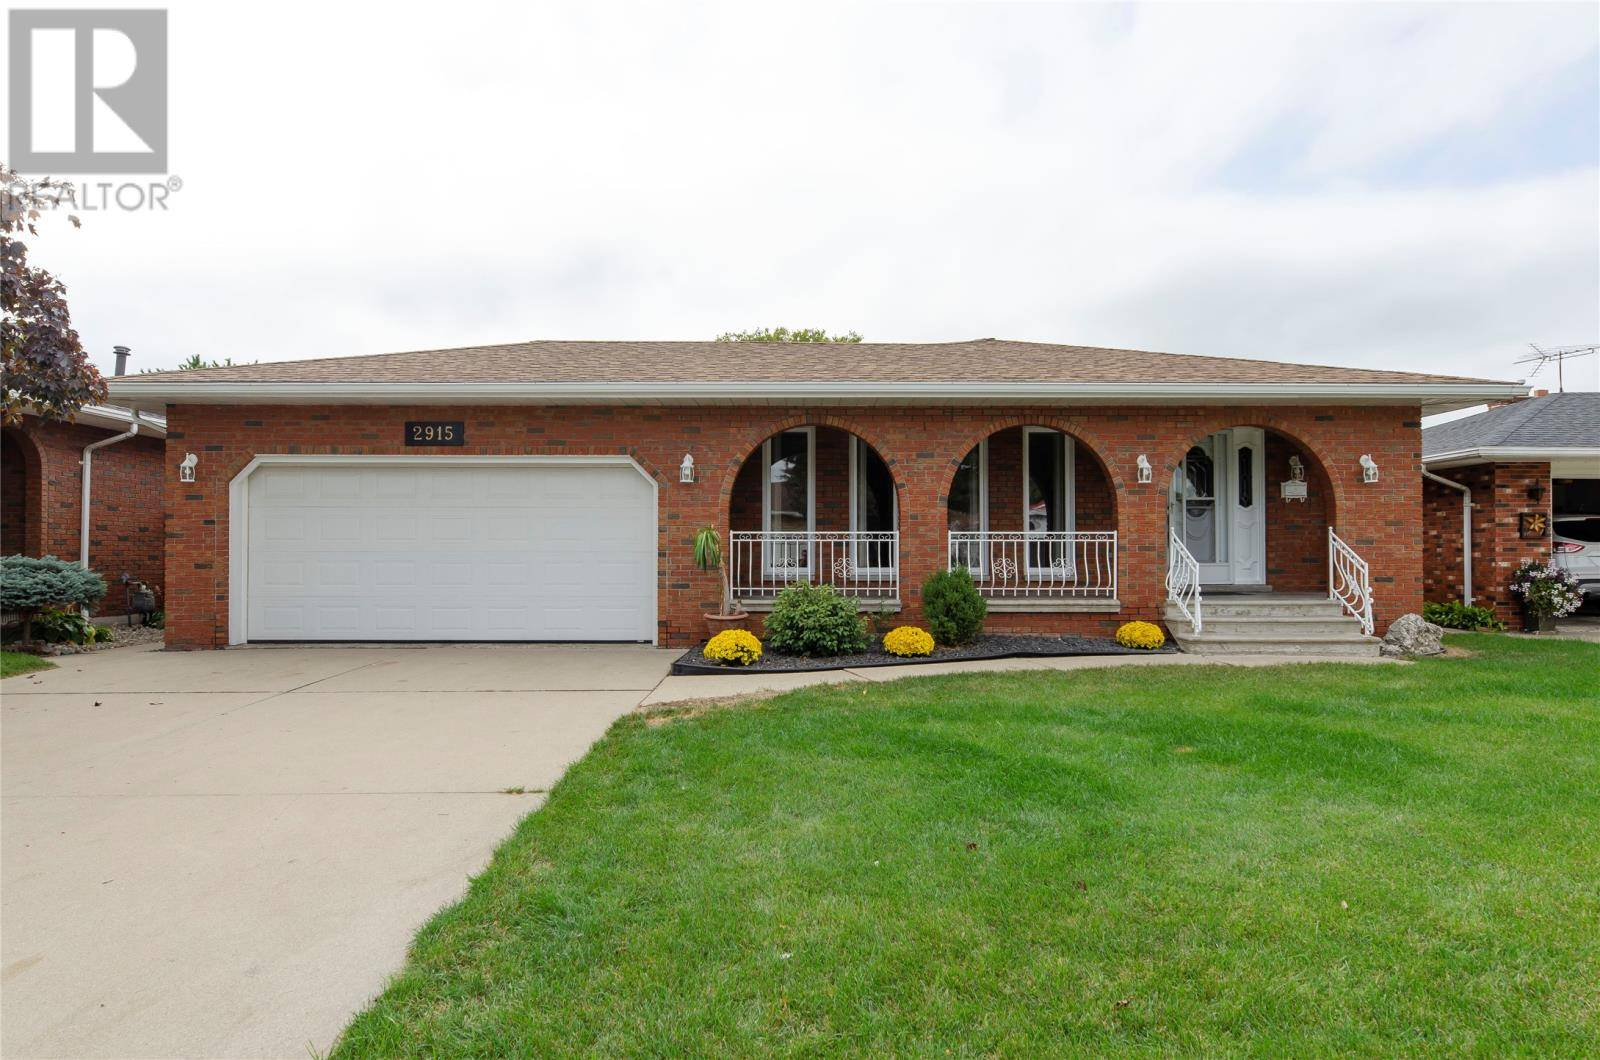 House for sale at 2915 St. Clair  Windsor Ontario - MLS: 19026138